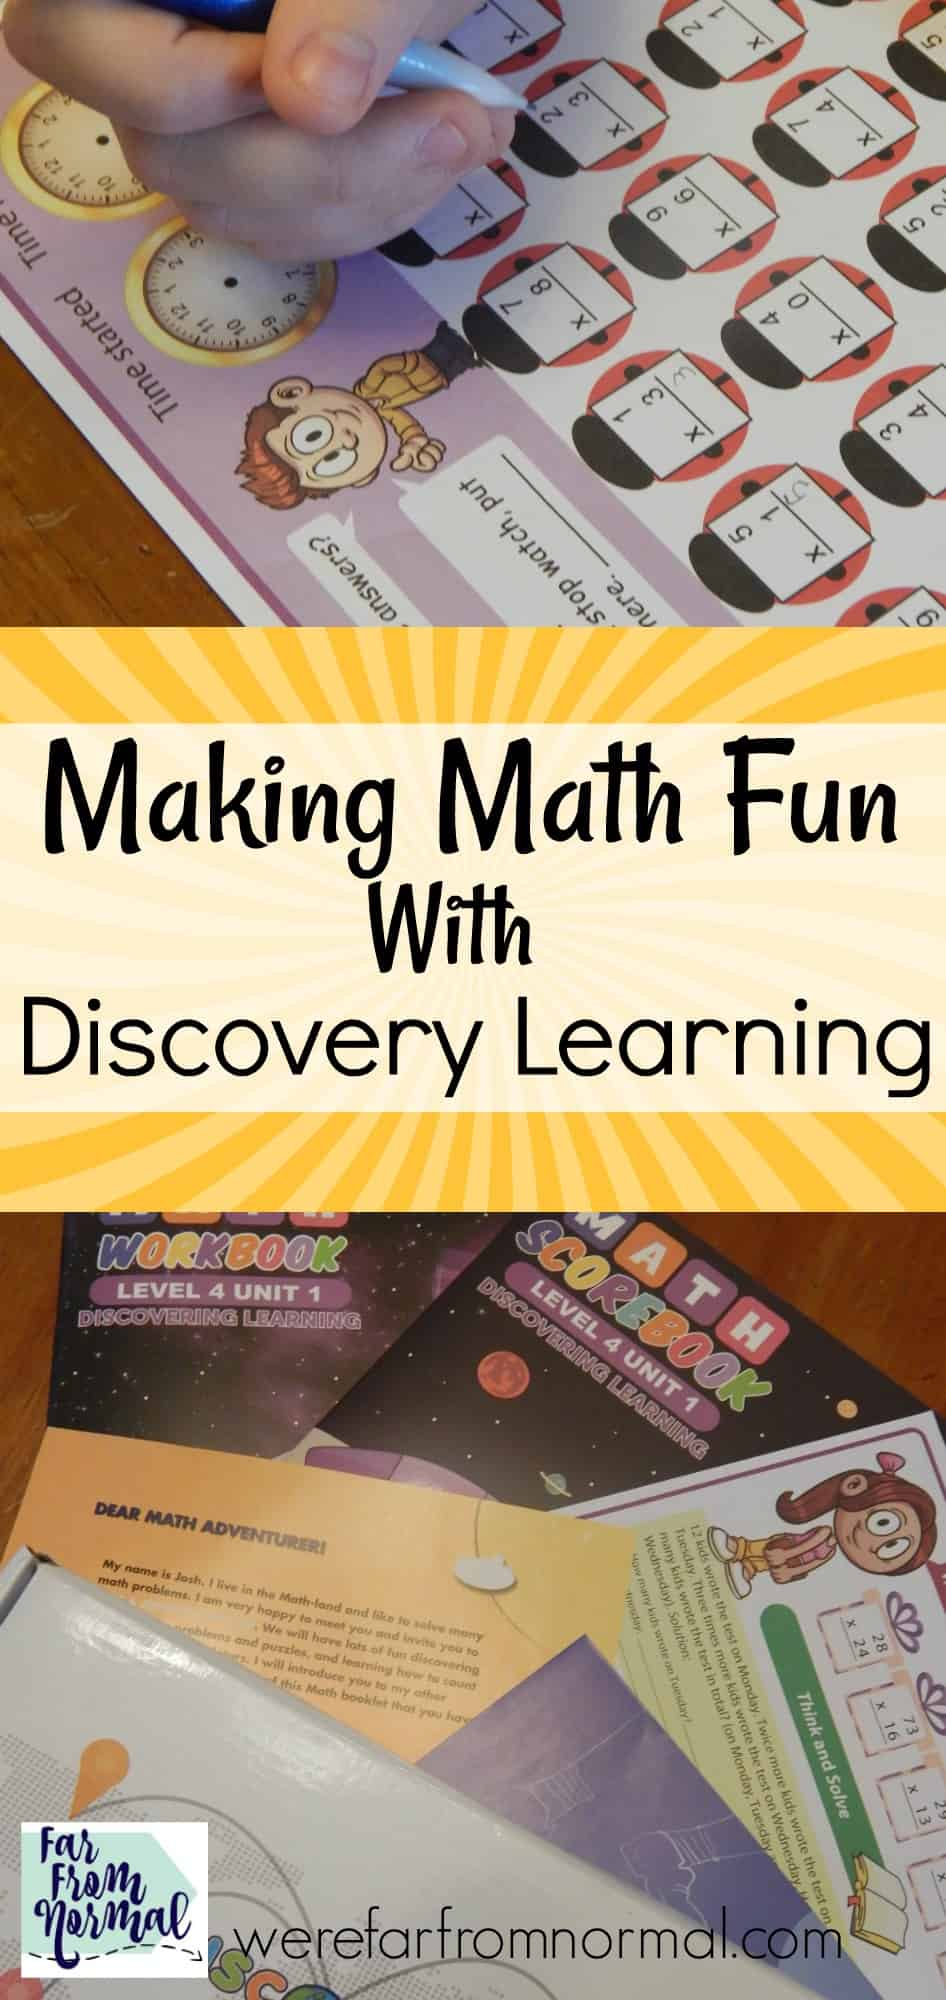 Making Math Fun With Discovery Learning | Far From Normal